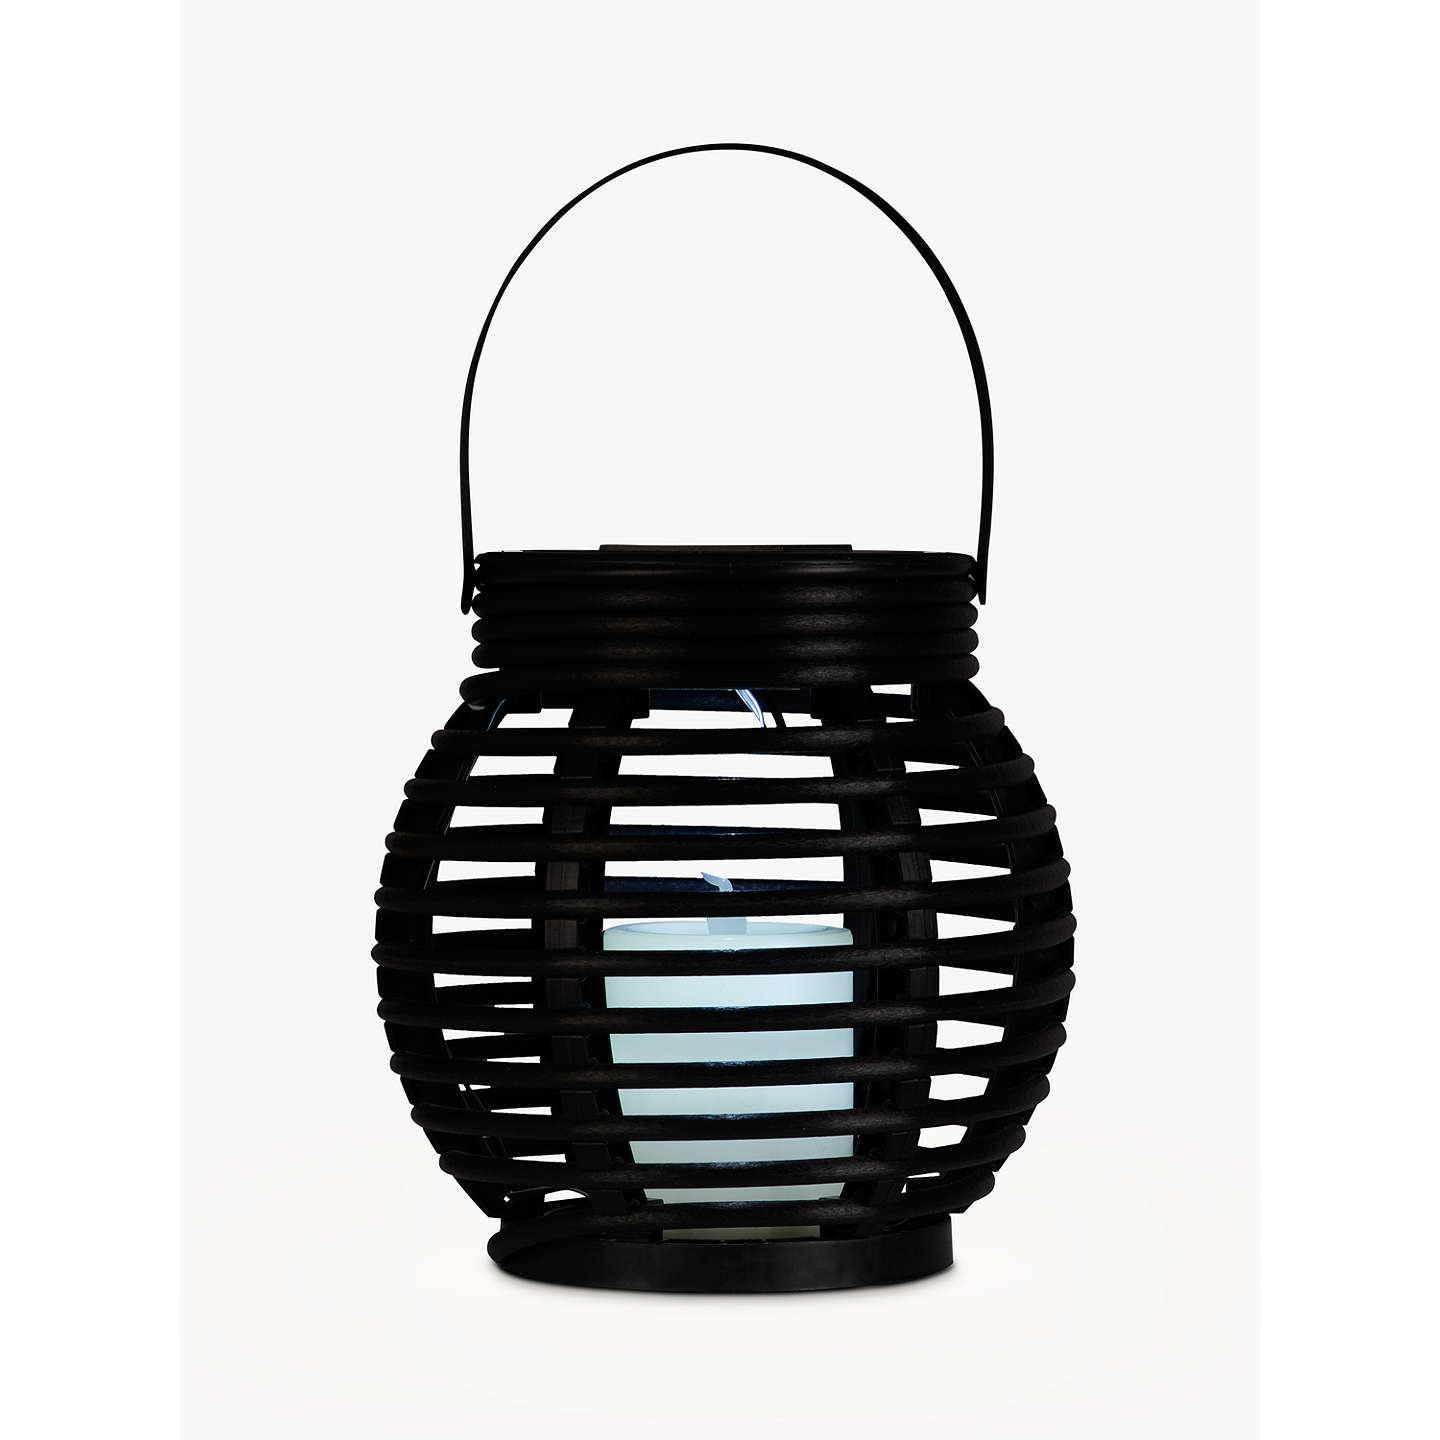 John lewis tresta rattan lantern solar outdoor light brown at john buyjohn lewis tresta rattan lantern solar outdoor light brown online at johnlewis mozeypictures Image collections